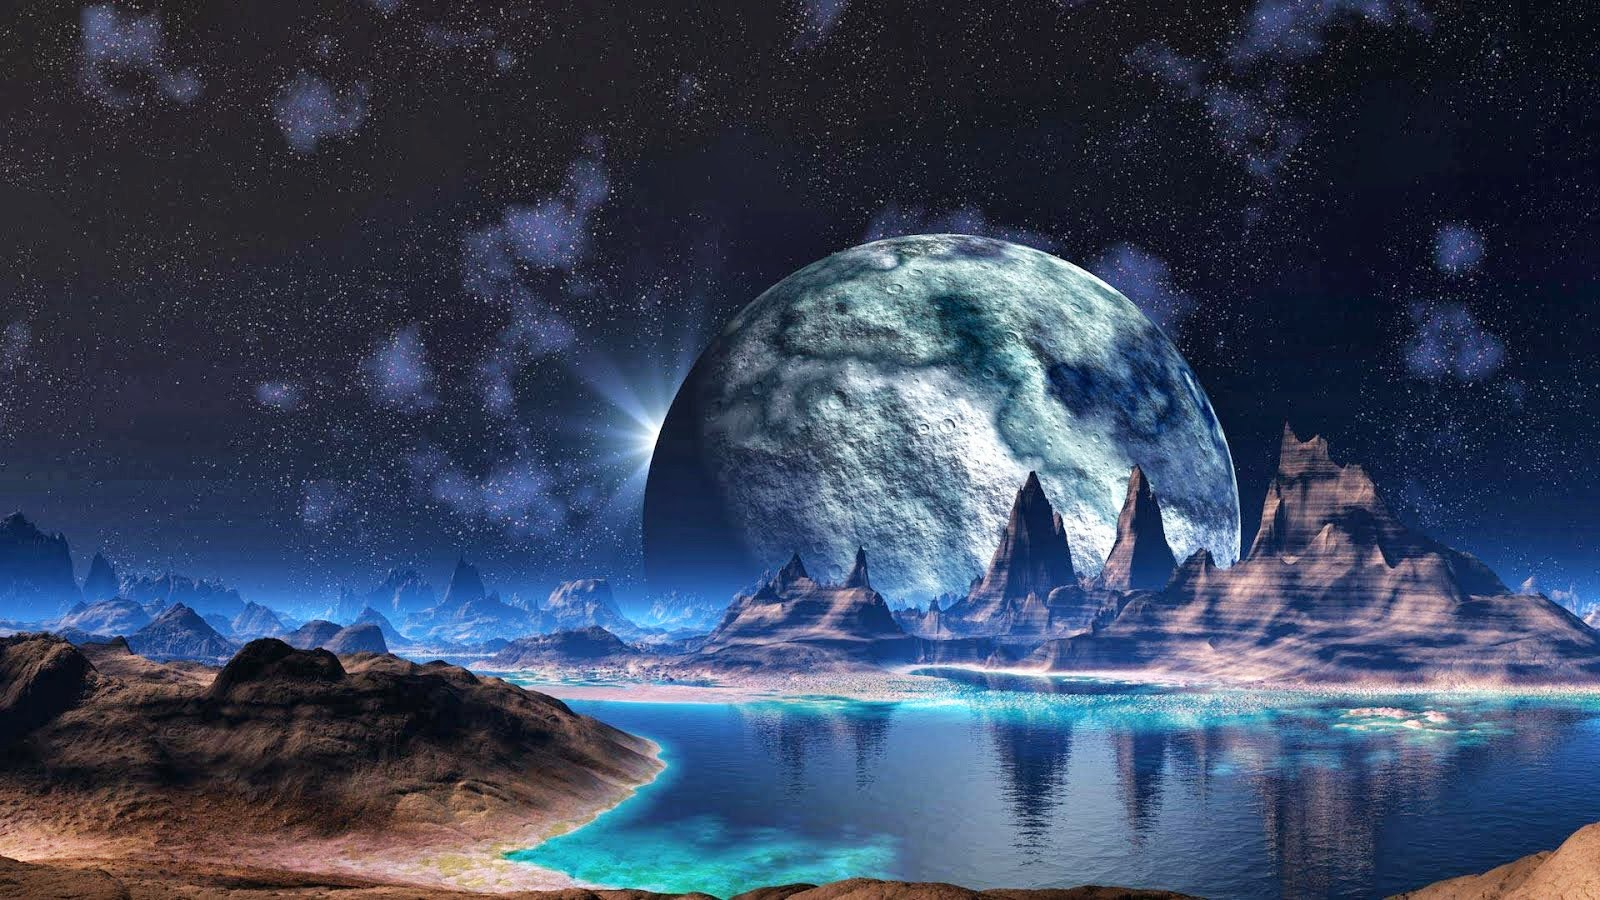 Free Hd Space Wallpapers.